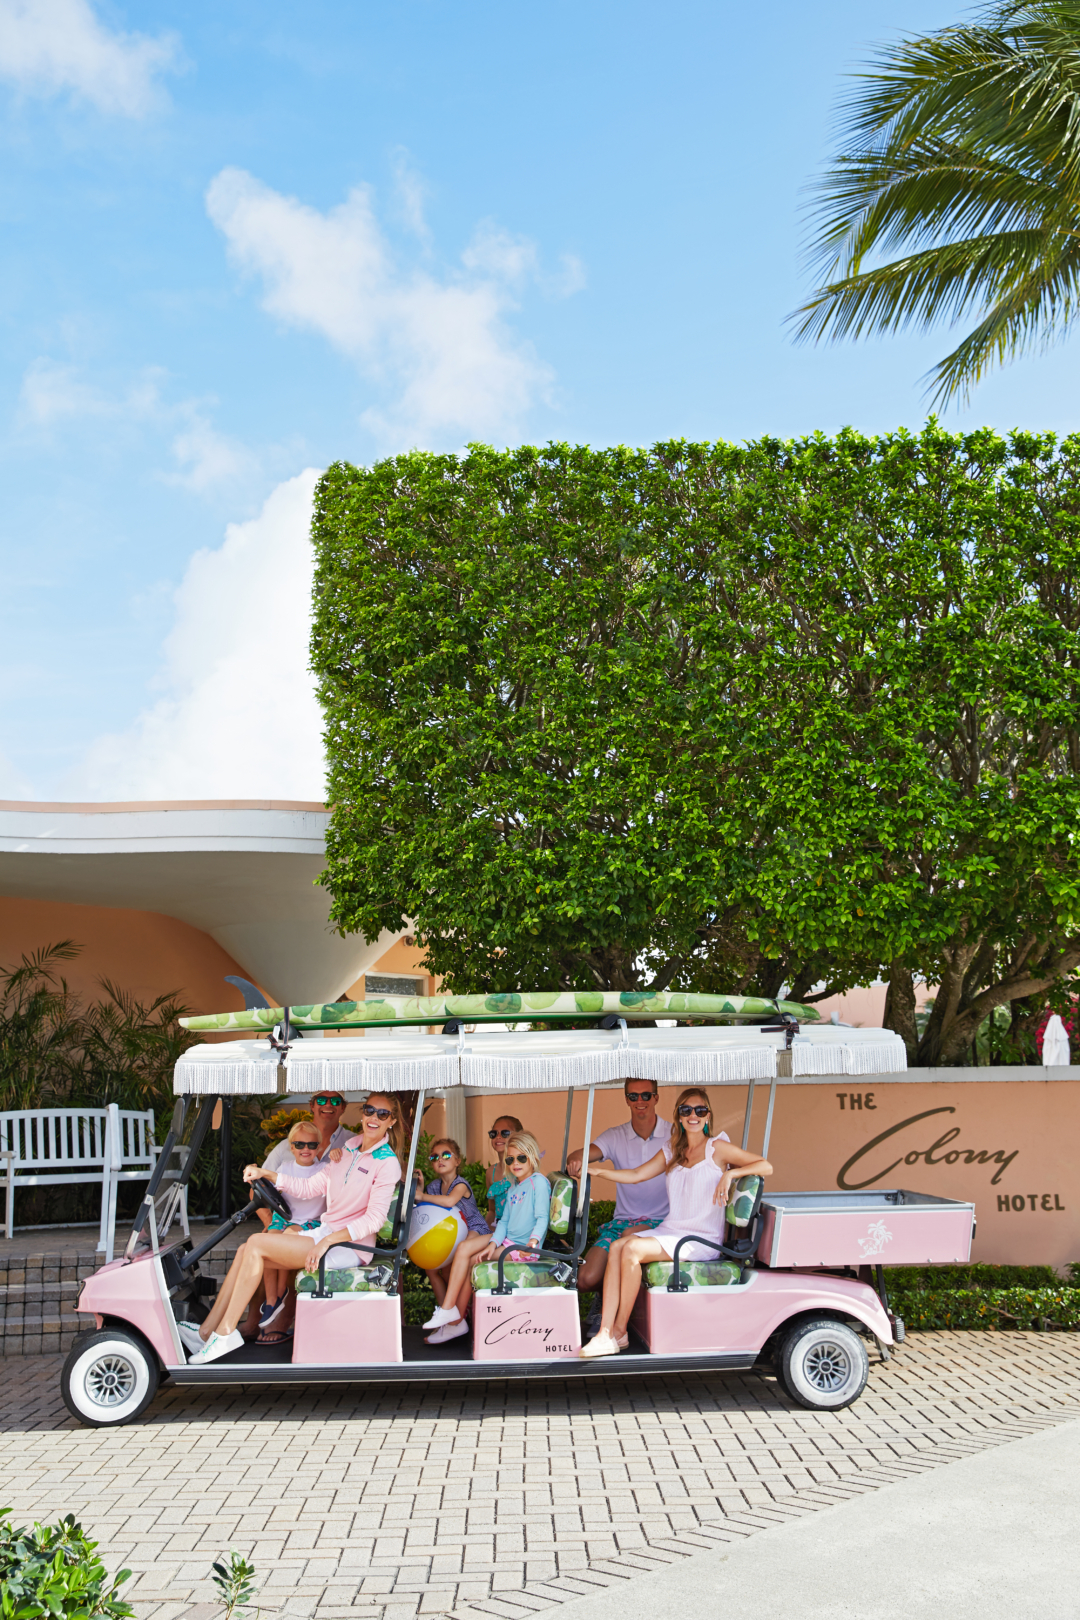 Fashion: vineyard vines x Palm Beach Lately's new collection is here!